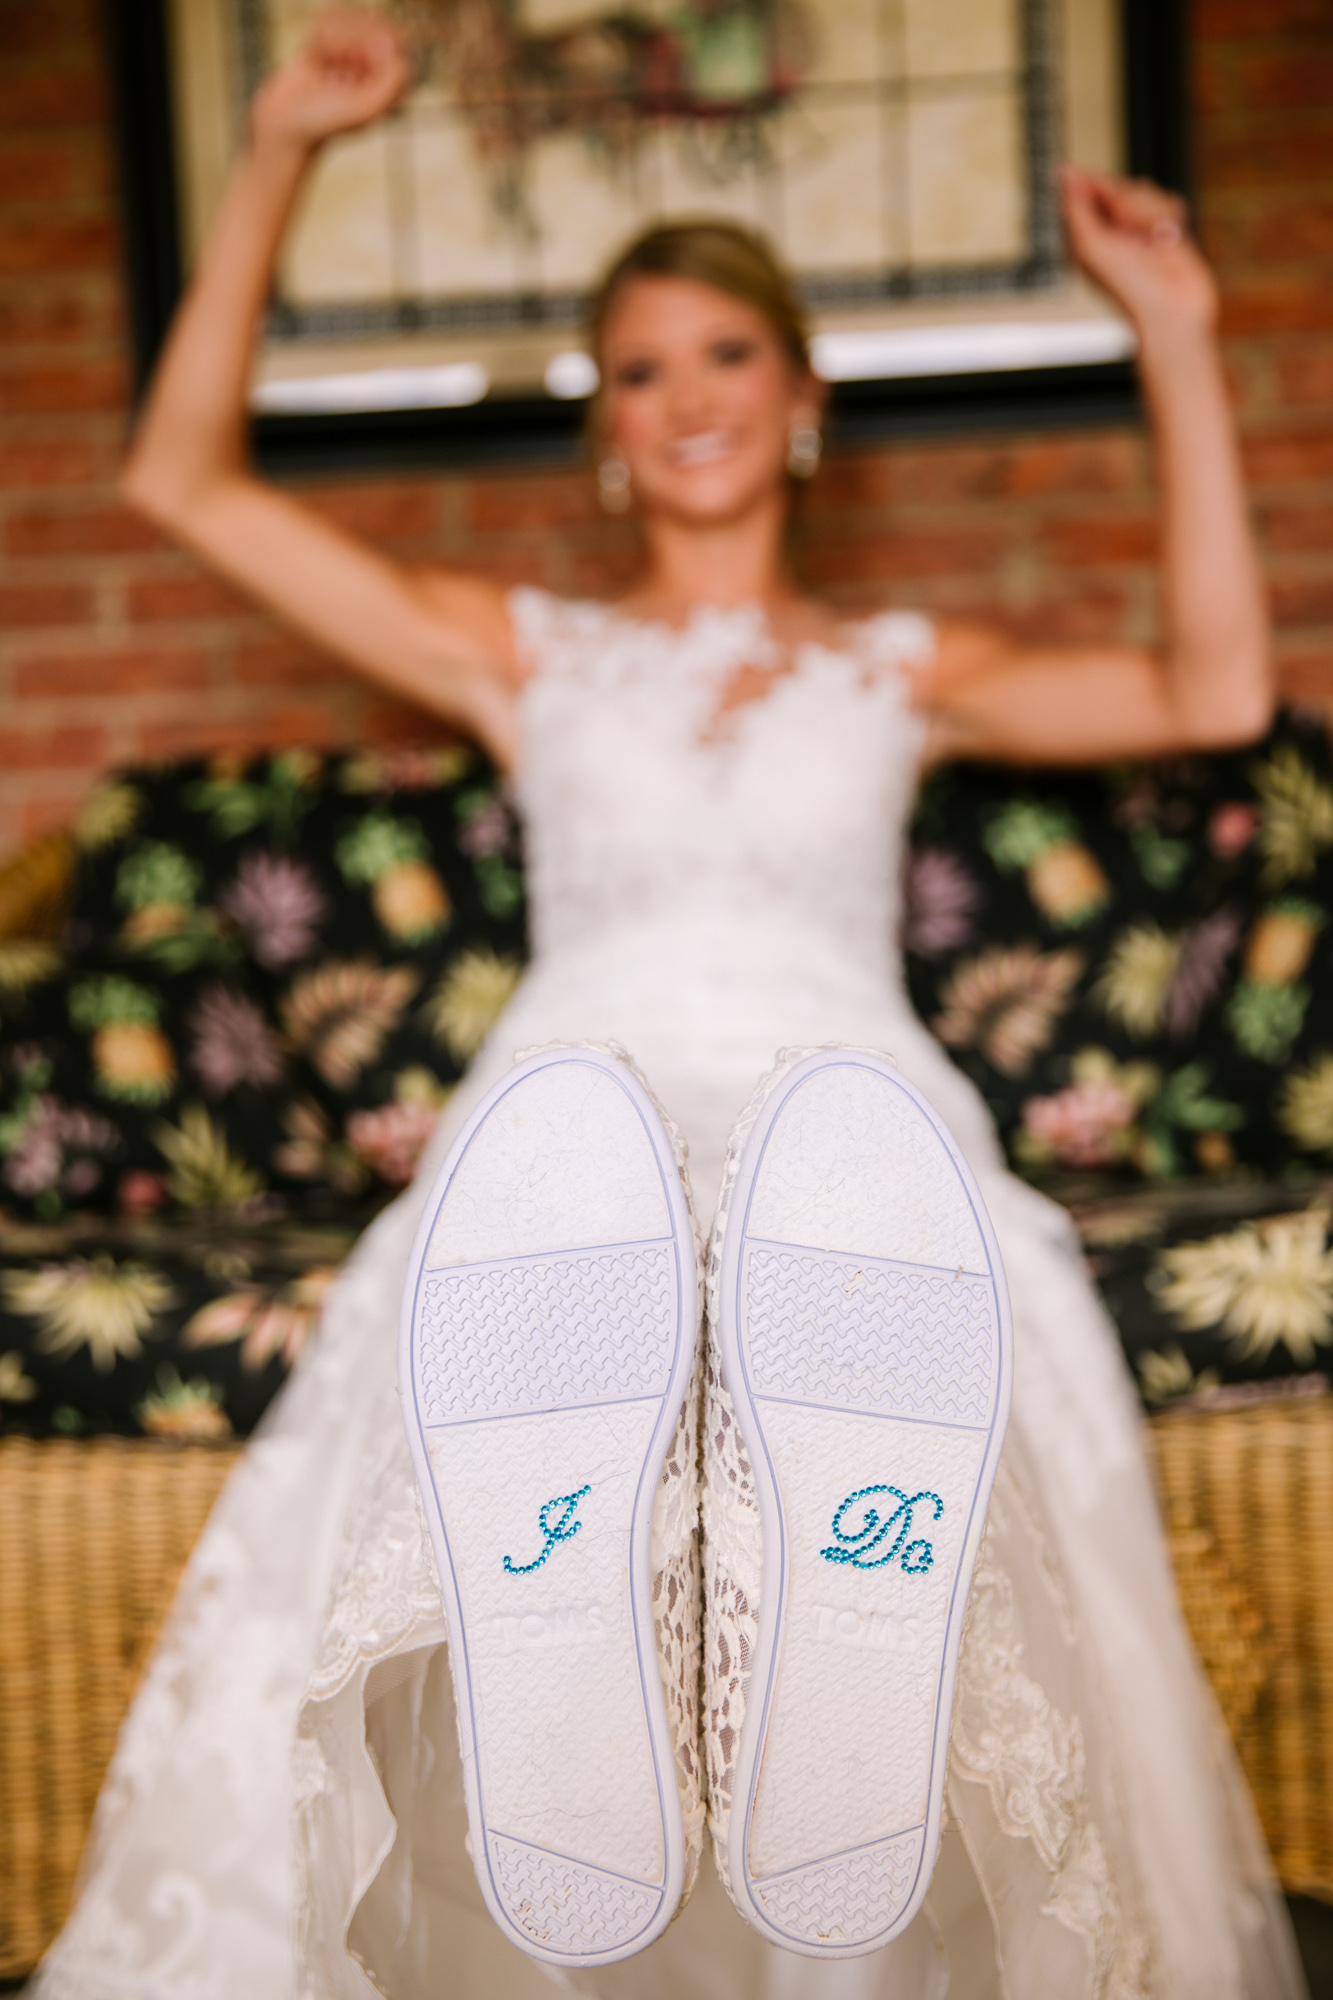 Waynesville, NC Wedding Photography | Bride and I DO Applique on shoes